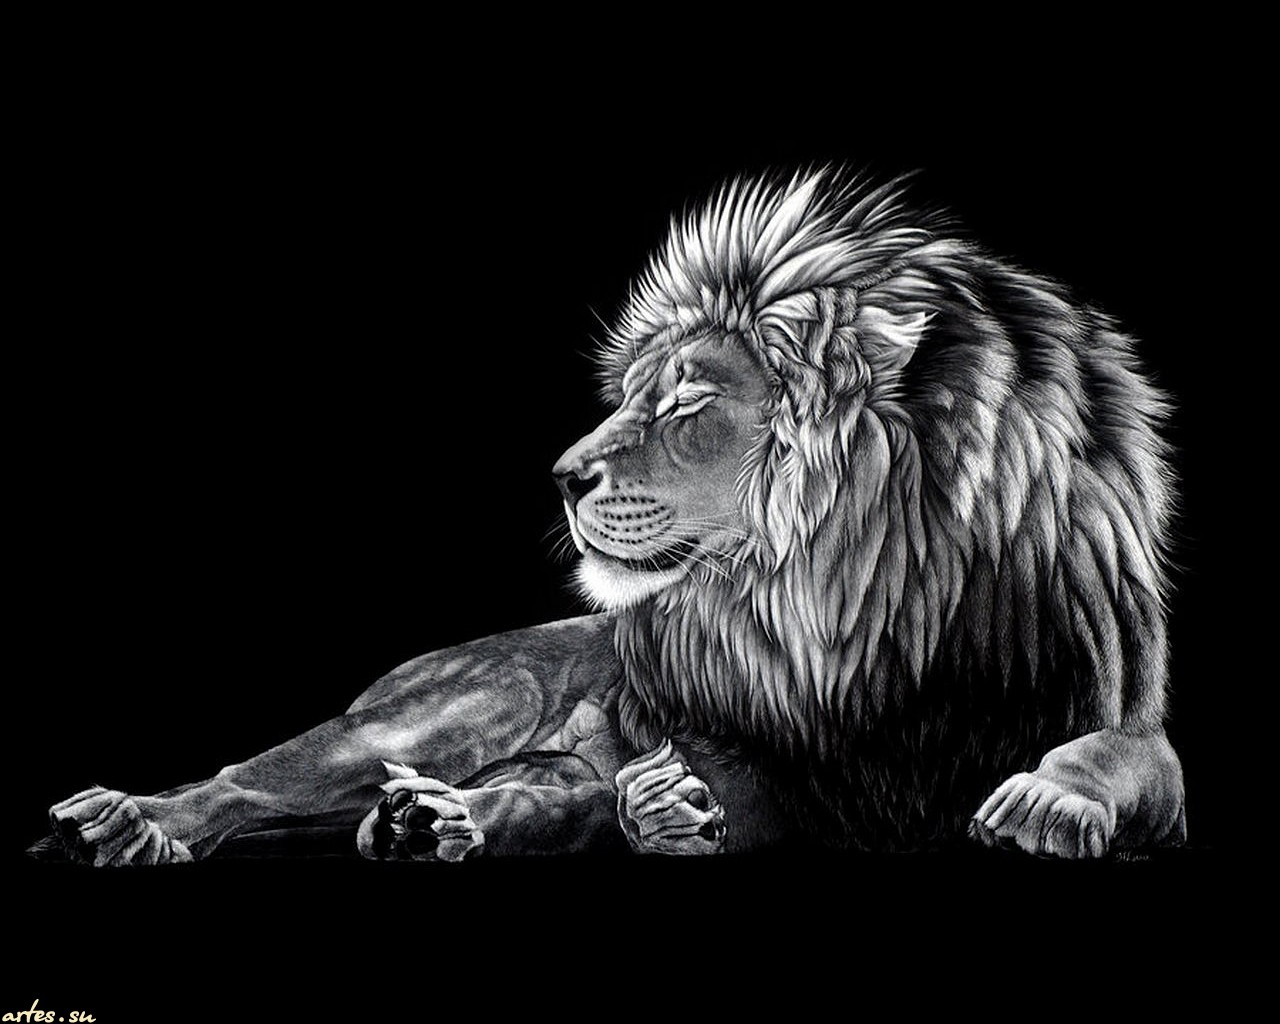 Lion Hd Wallpapers Lion Hd Pictures Free Download Hd 1280x1024